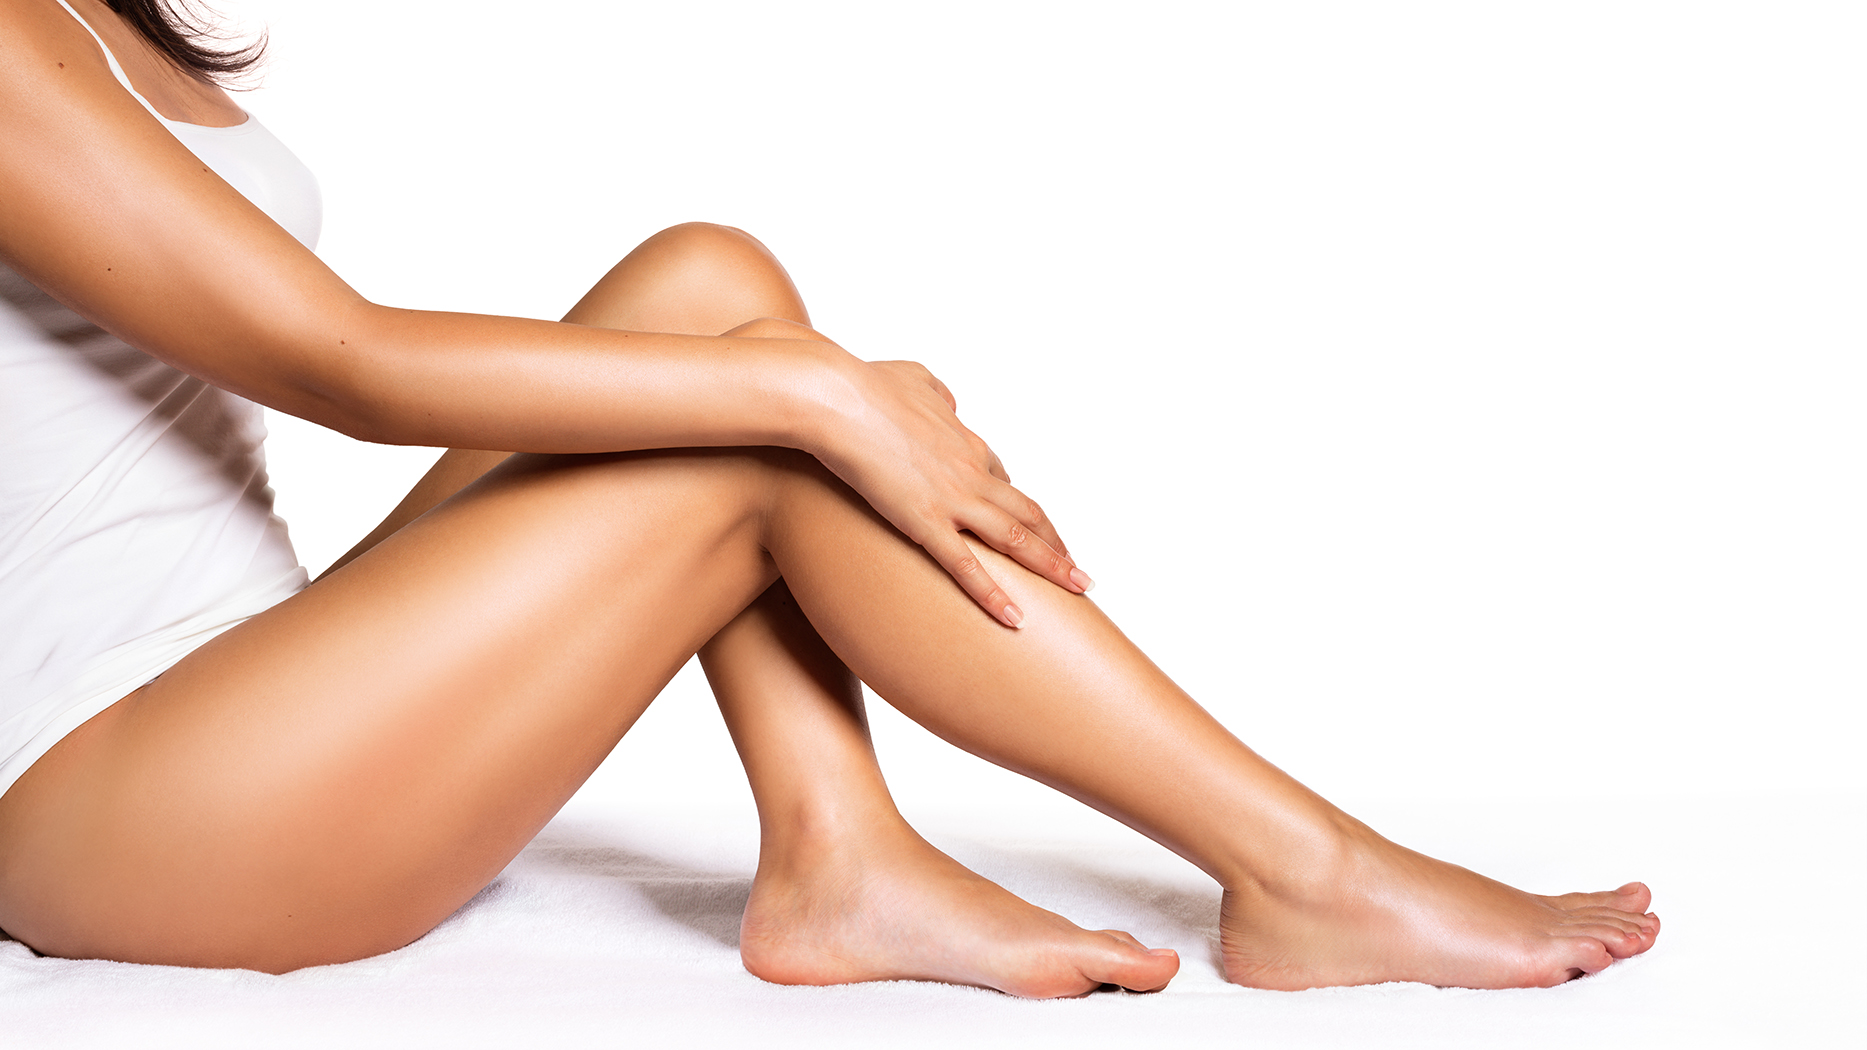 Lady with shaved and toned legs